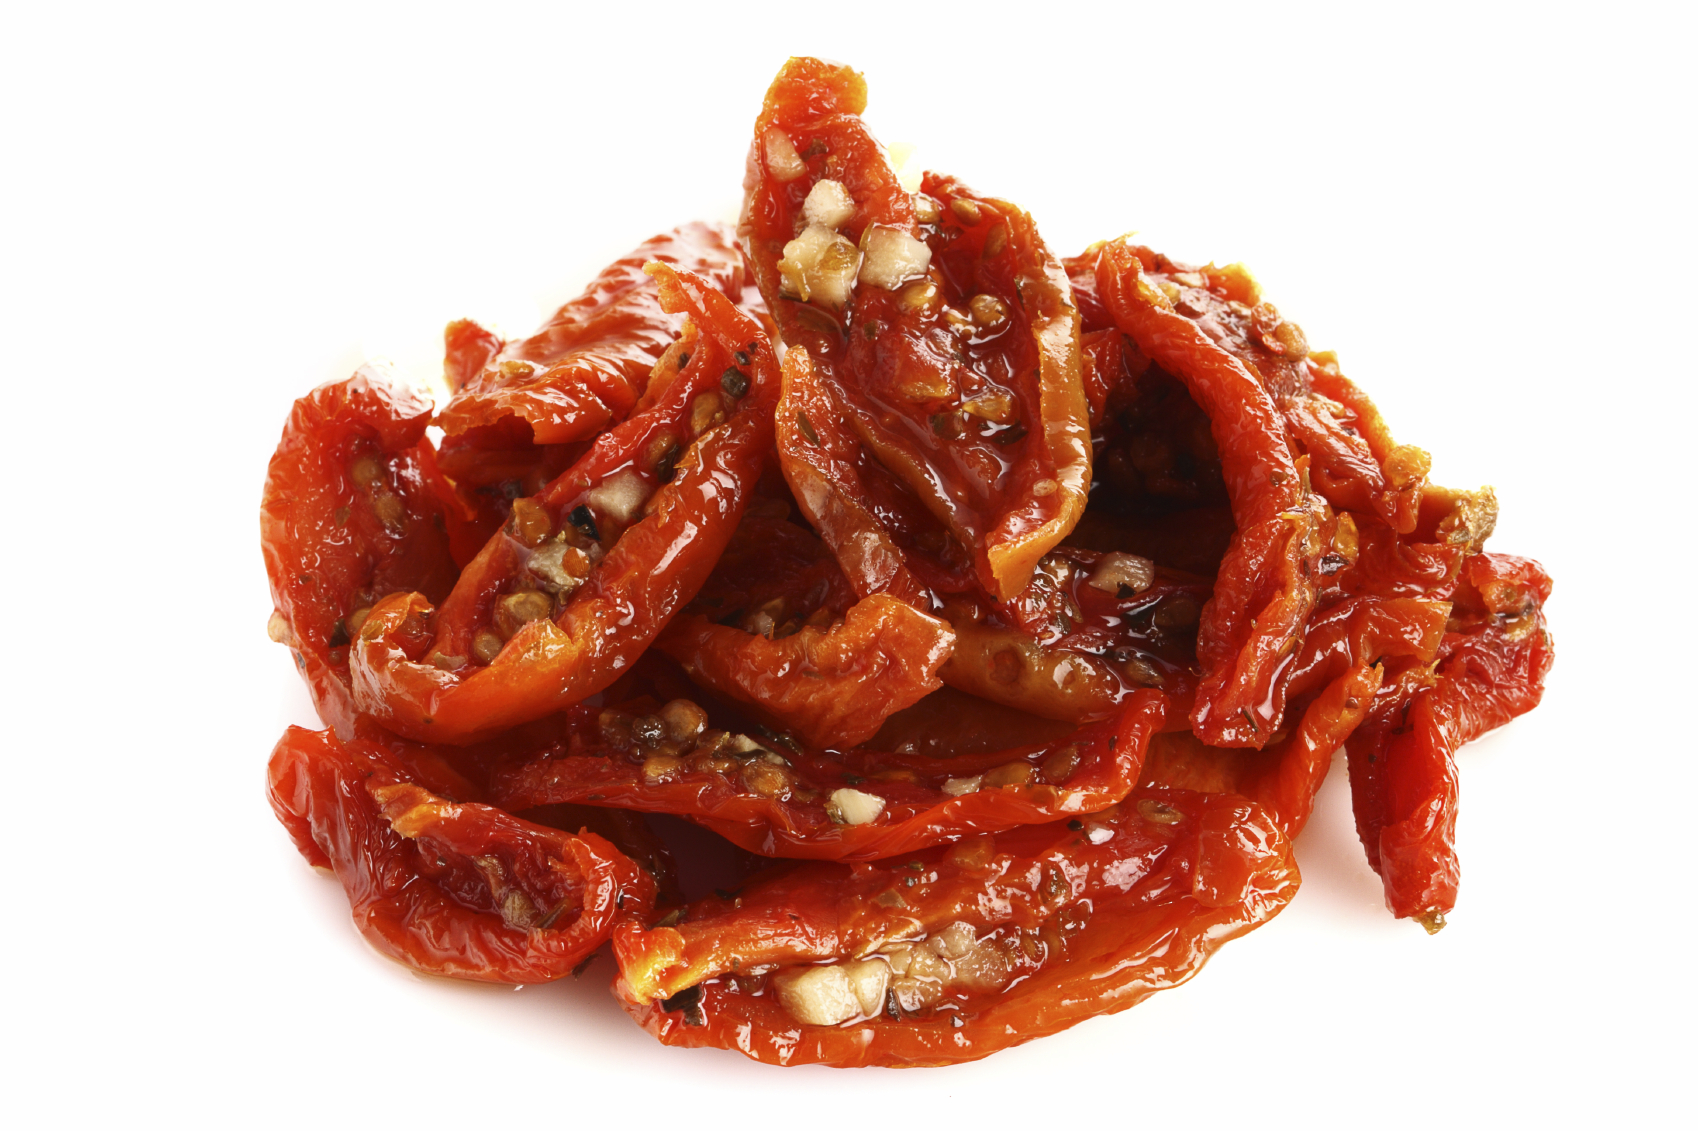 Kif tħejji t-tadam imqadded: How to prepare dried tomatoes